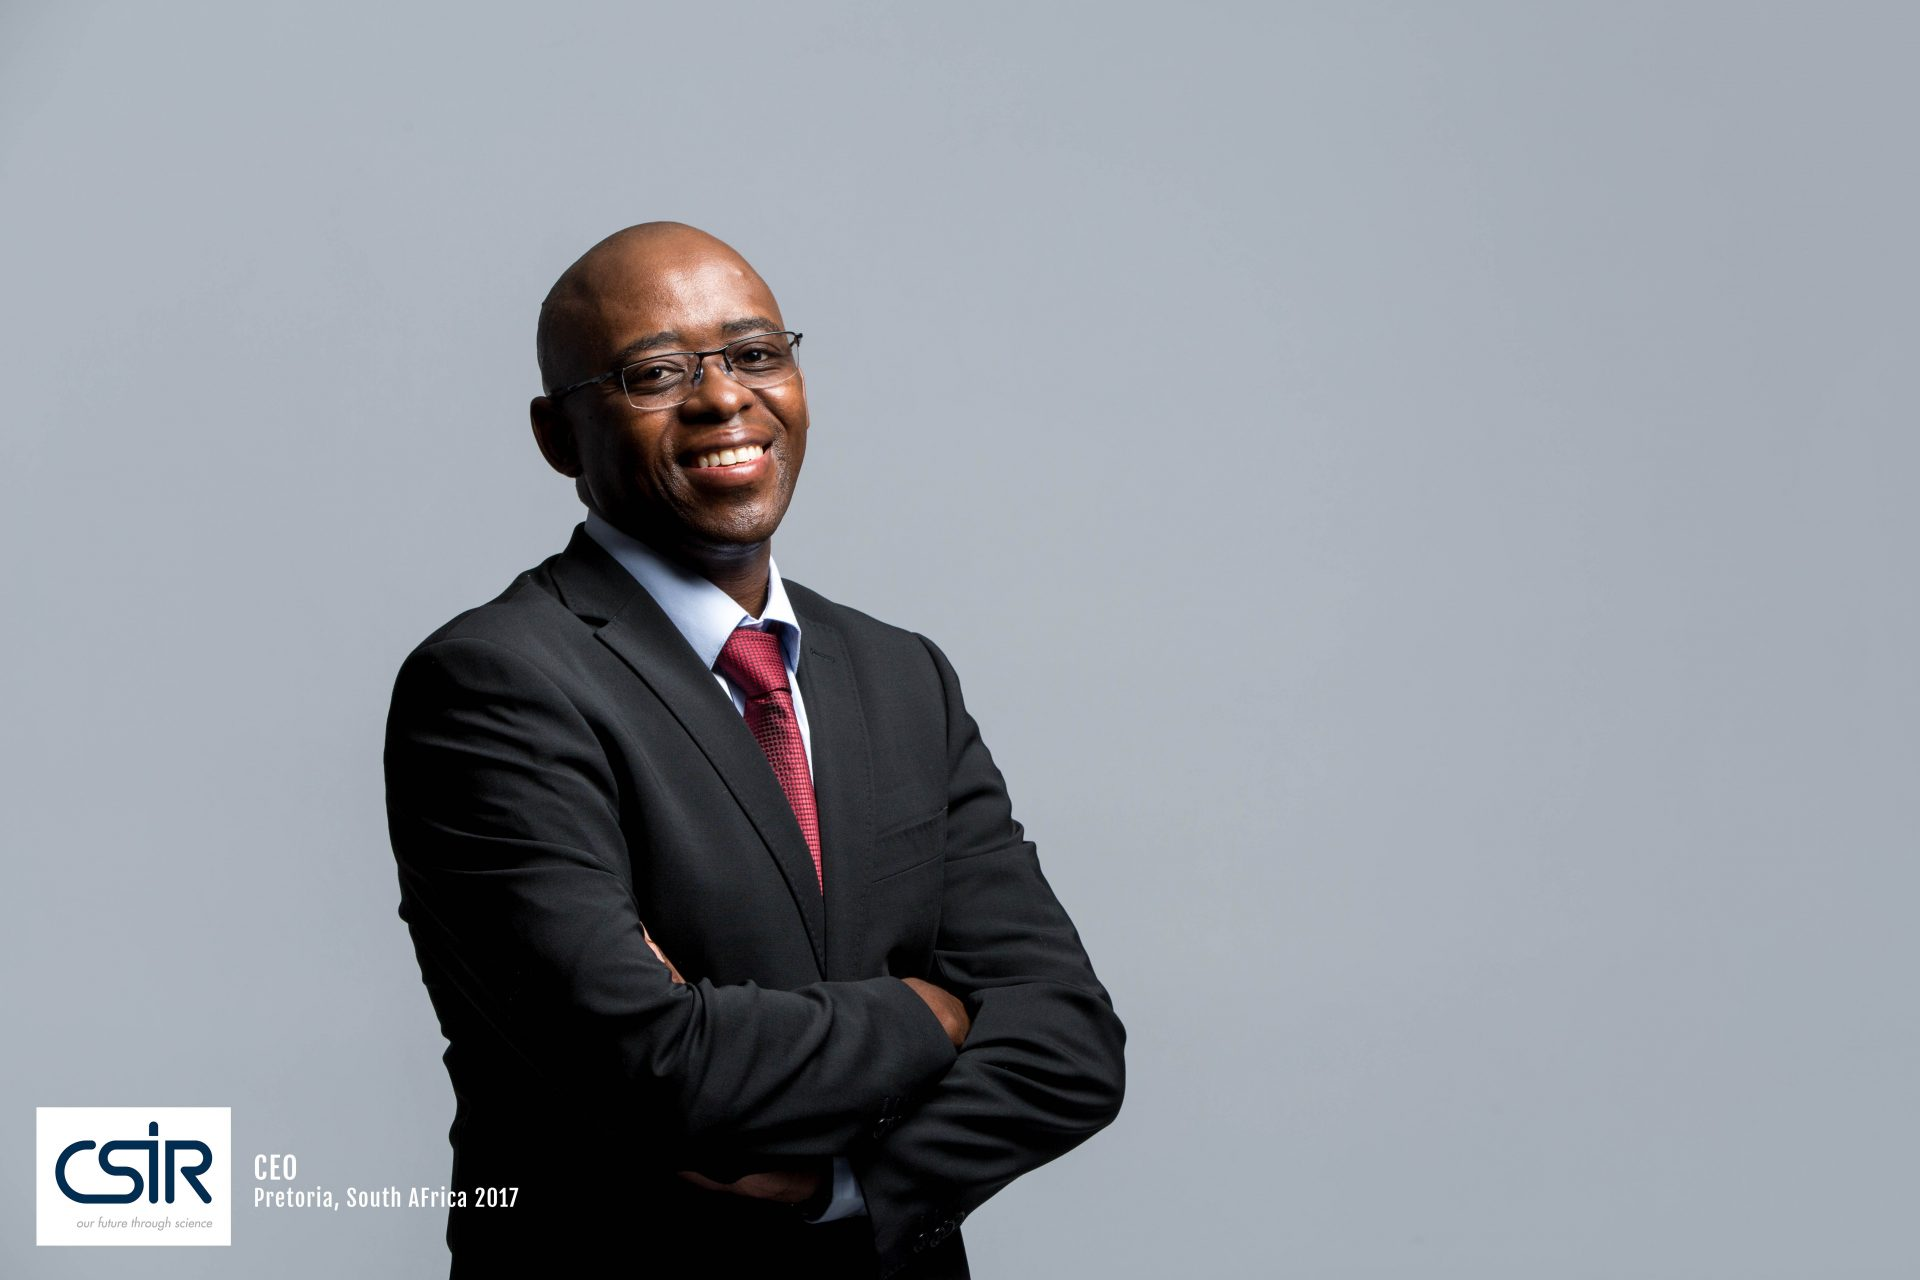 Portrait of CEO CSIR - Black man with glasses